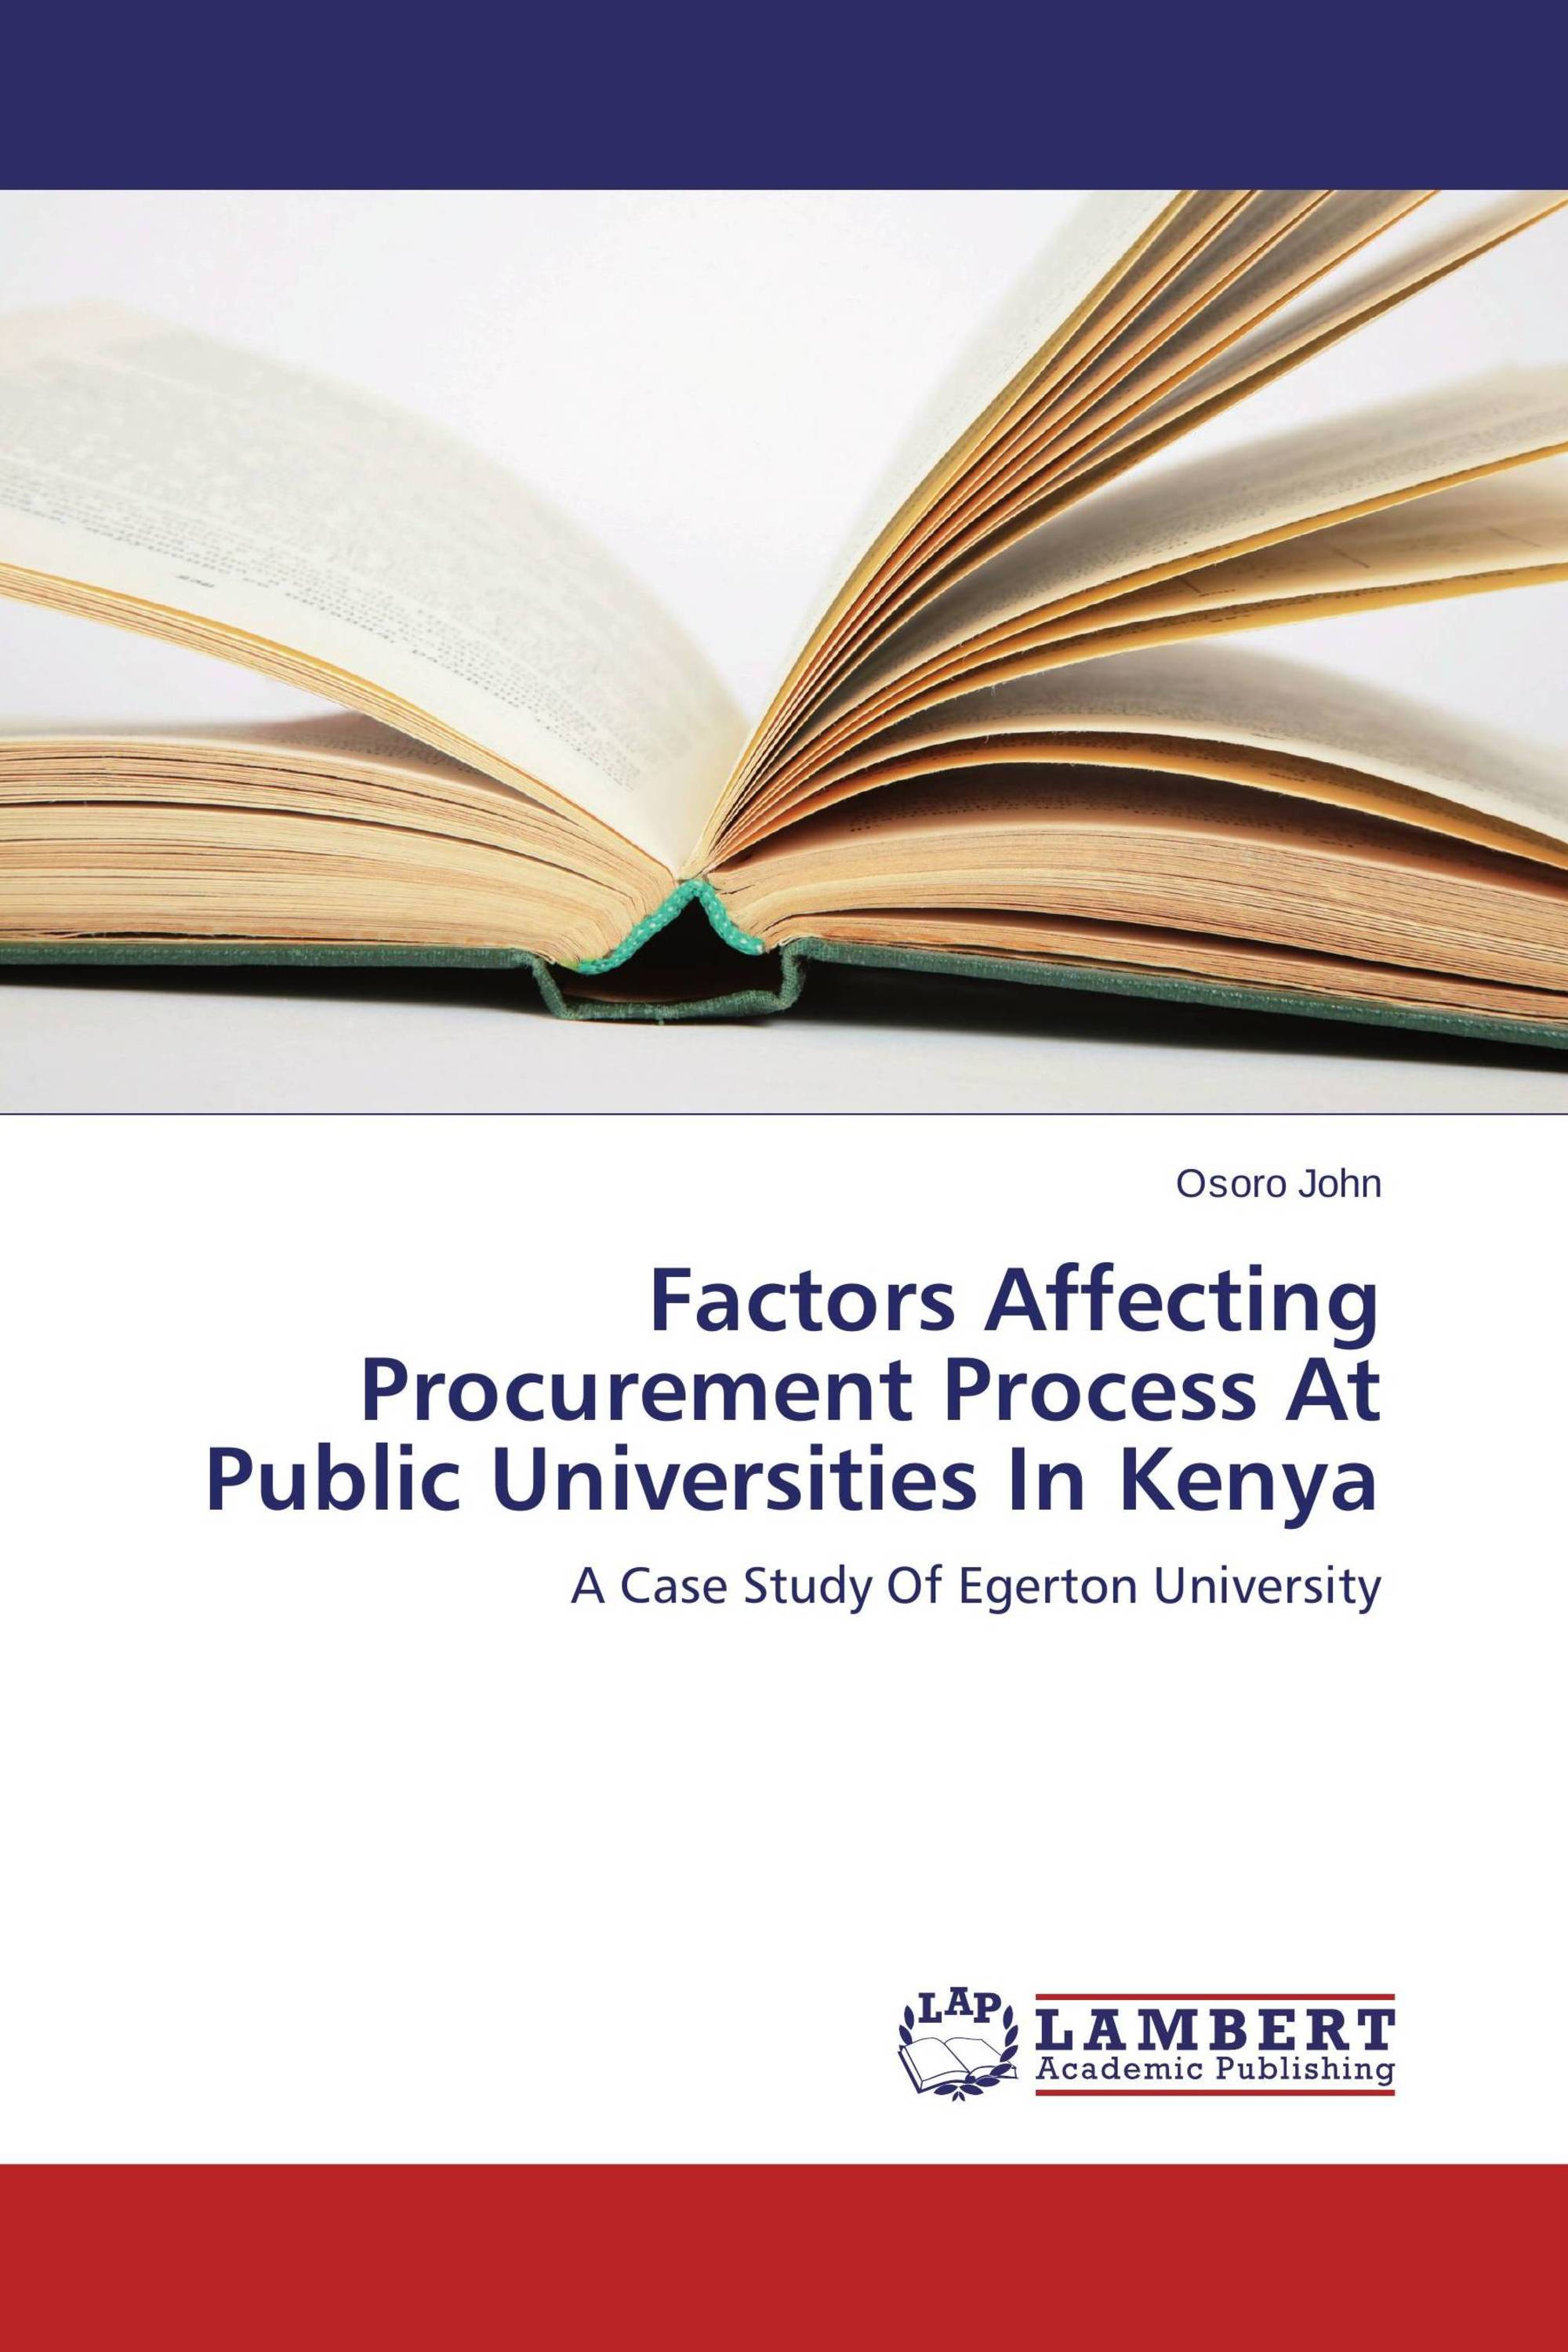 thesis on procurement The impact of shared services in public procurement operations on good governance master thesis submitted in fulfillment of the degree master of business.